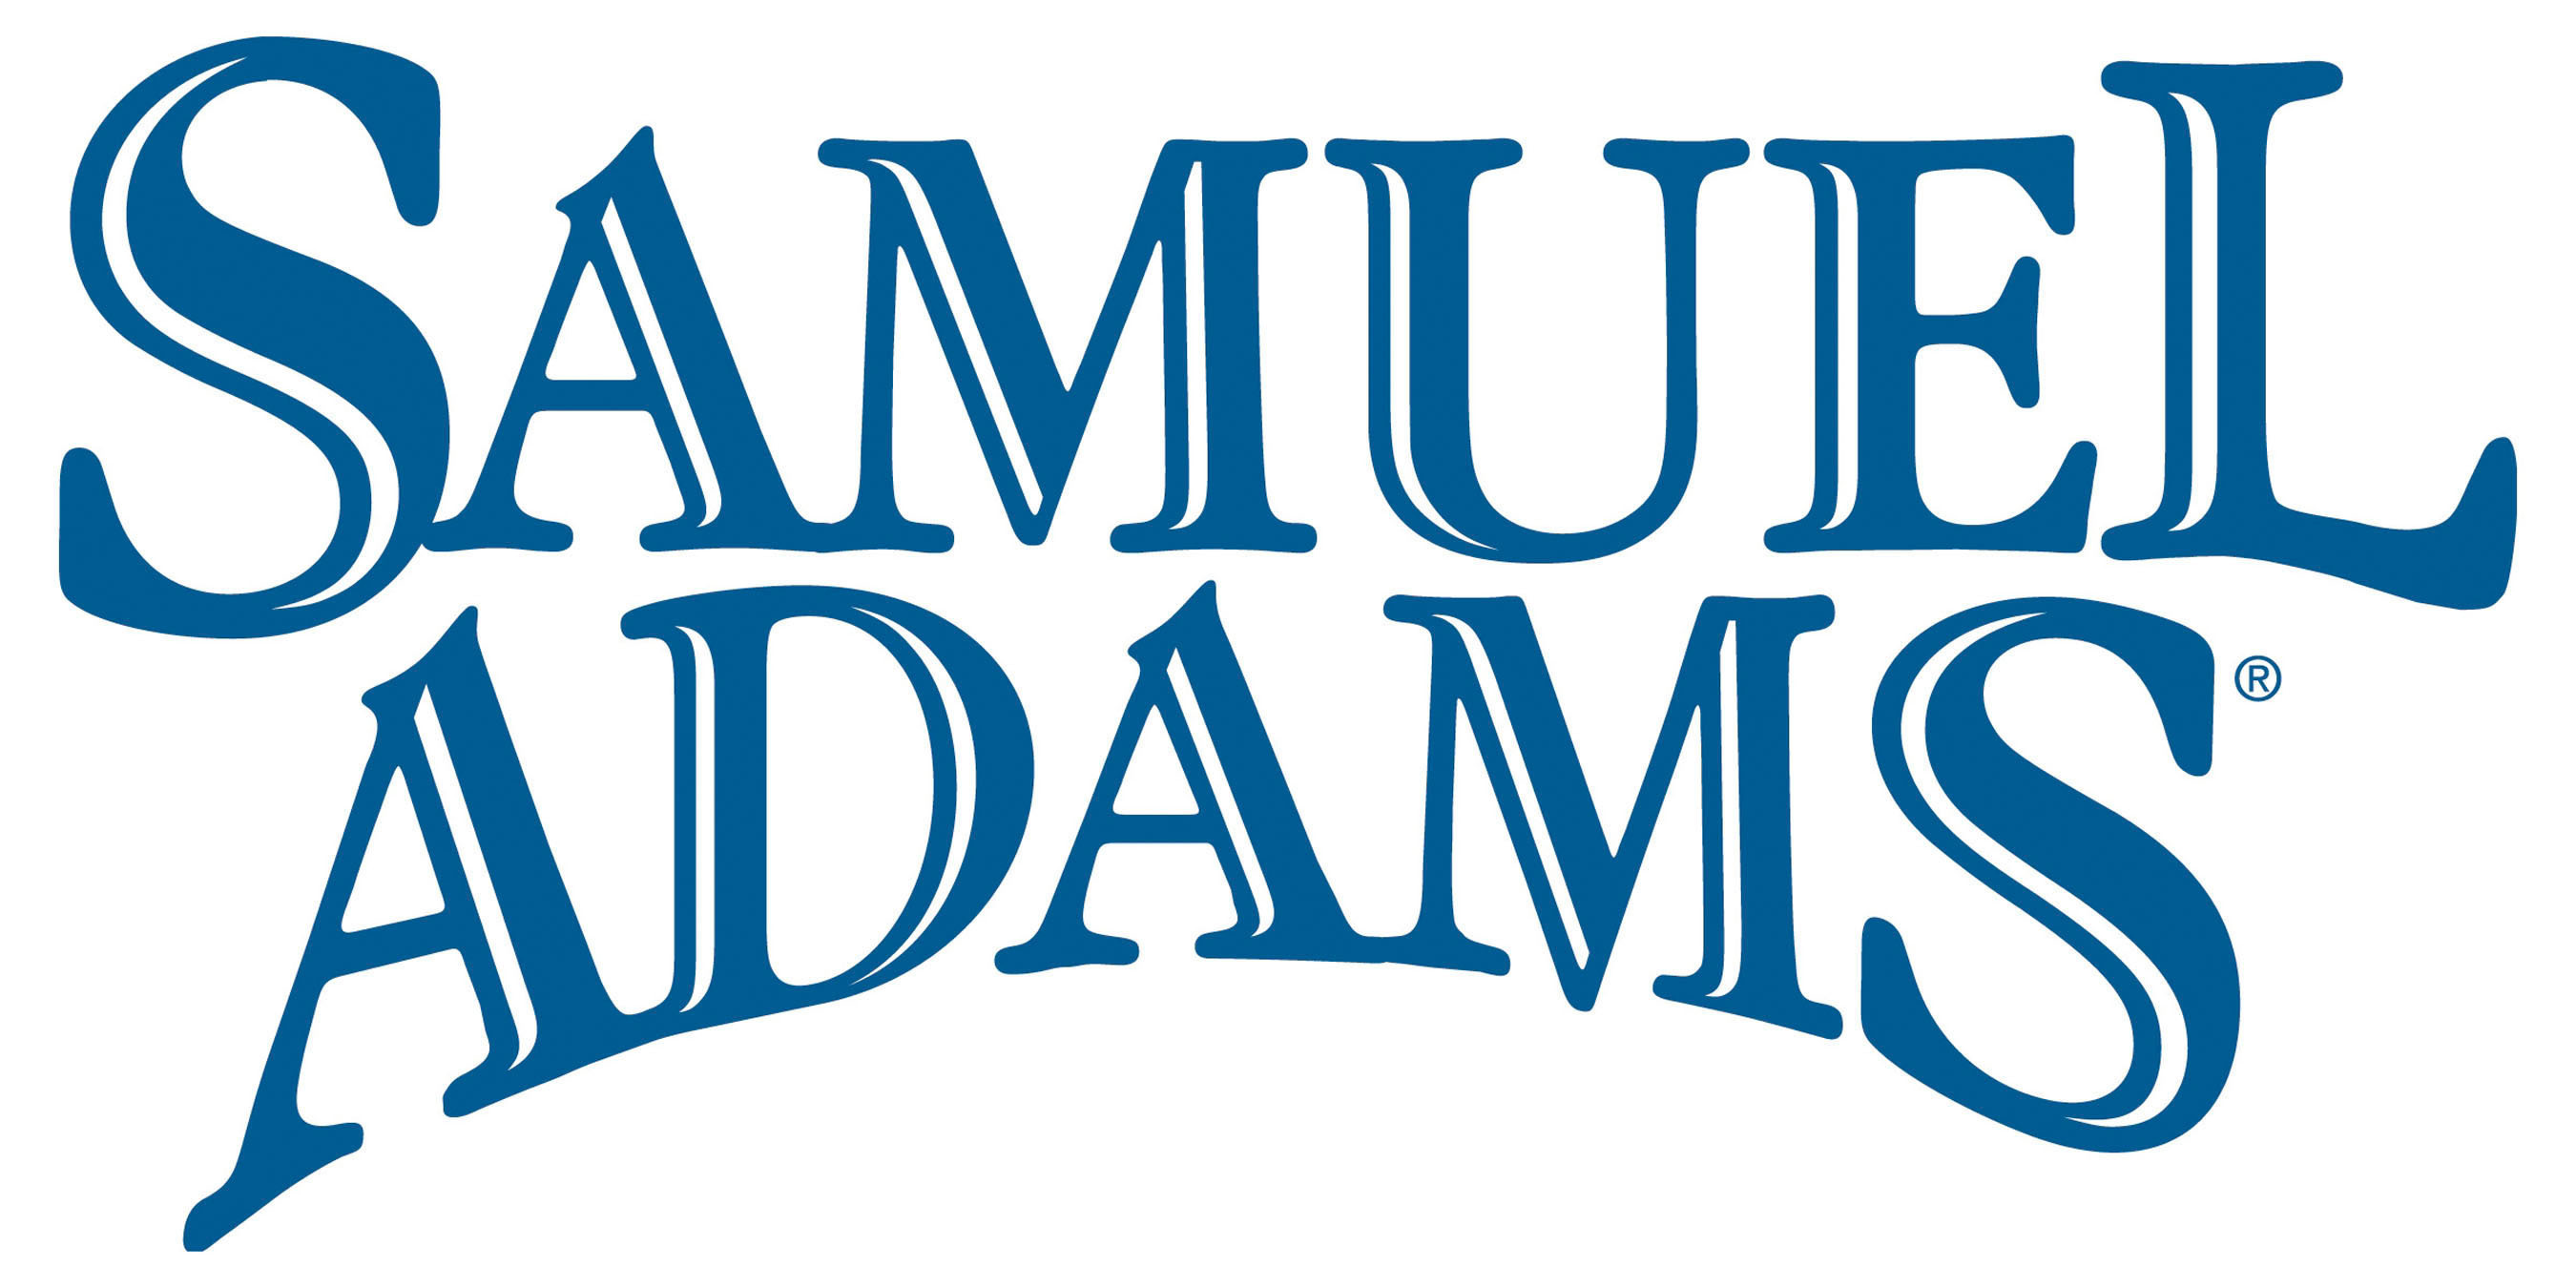 Samuel Adams Announces 2014 National Longshot American Homebrew Contest Winners on Latest Writing A Press Release